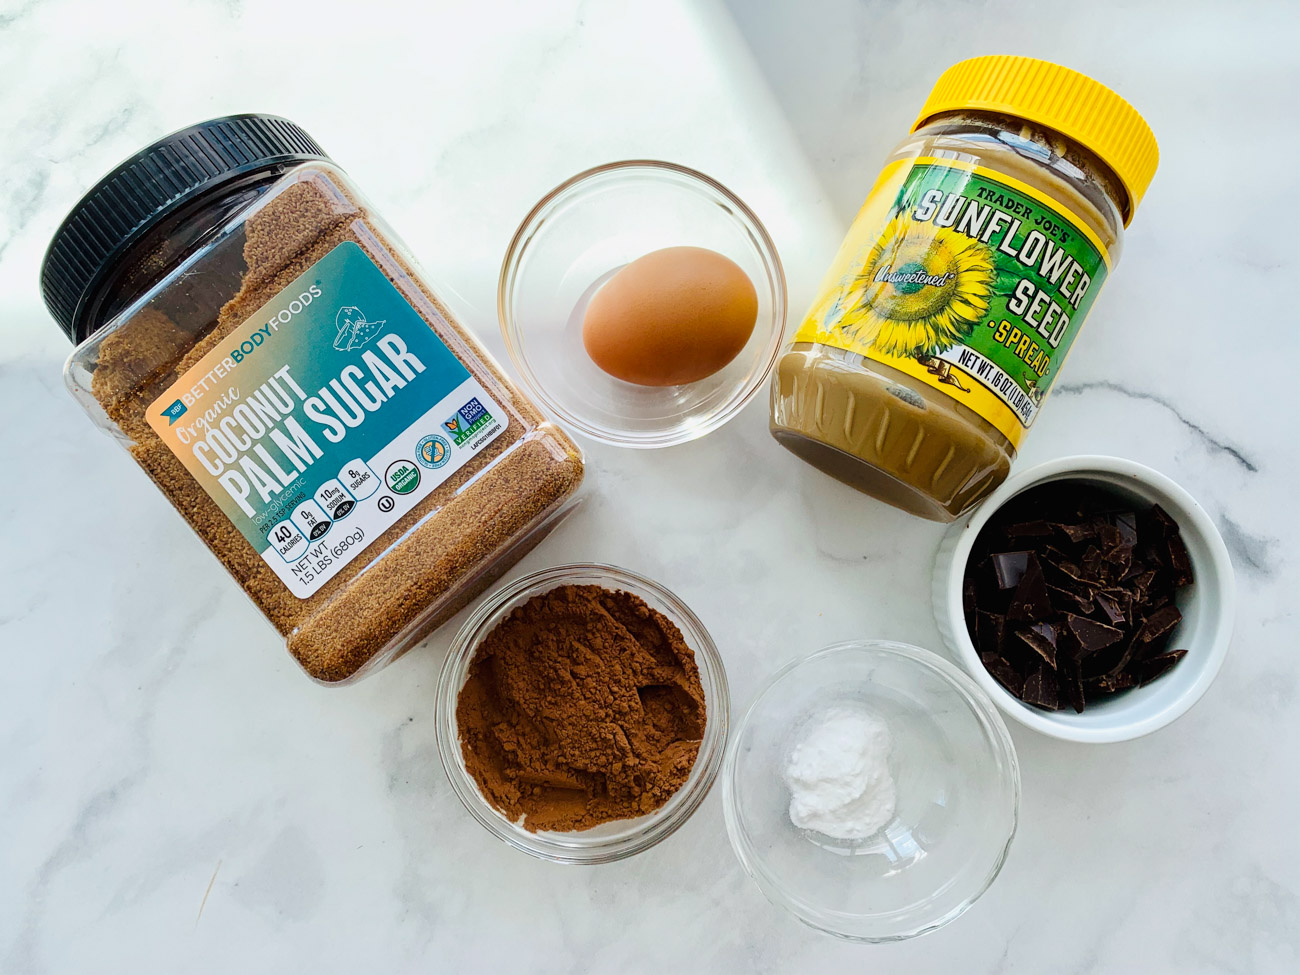 Ingredients for double chocolate sunflower cookies